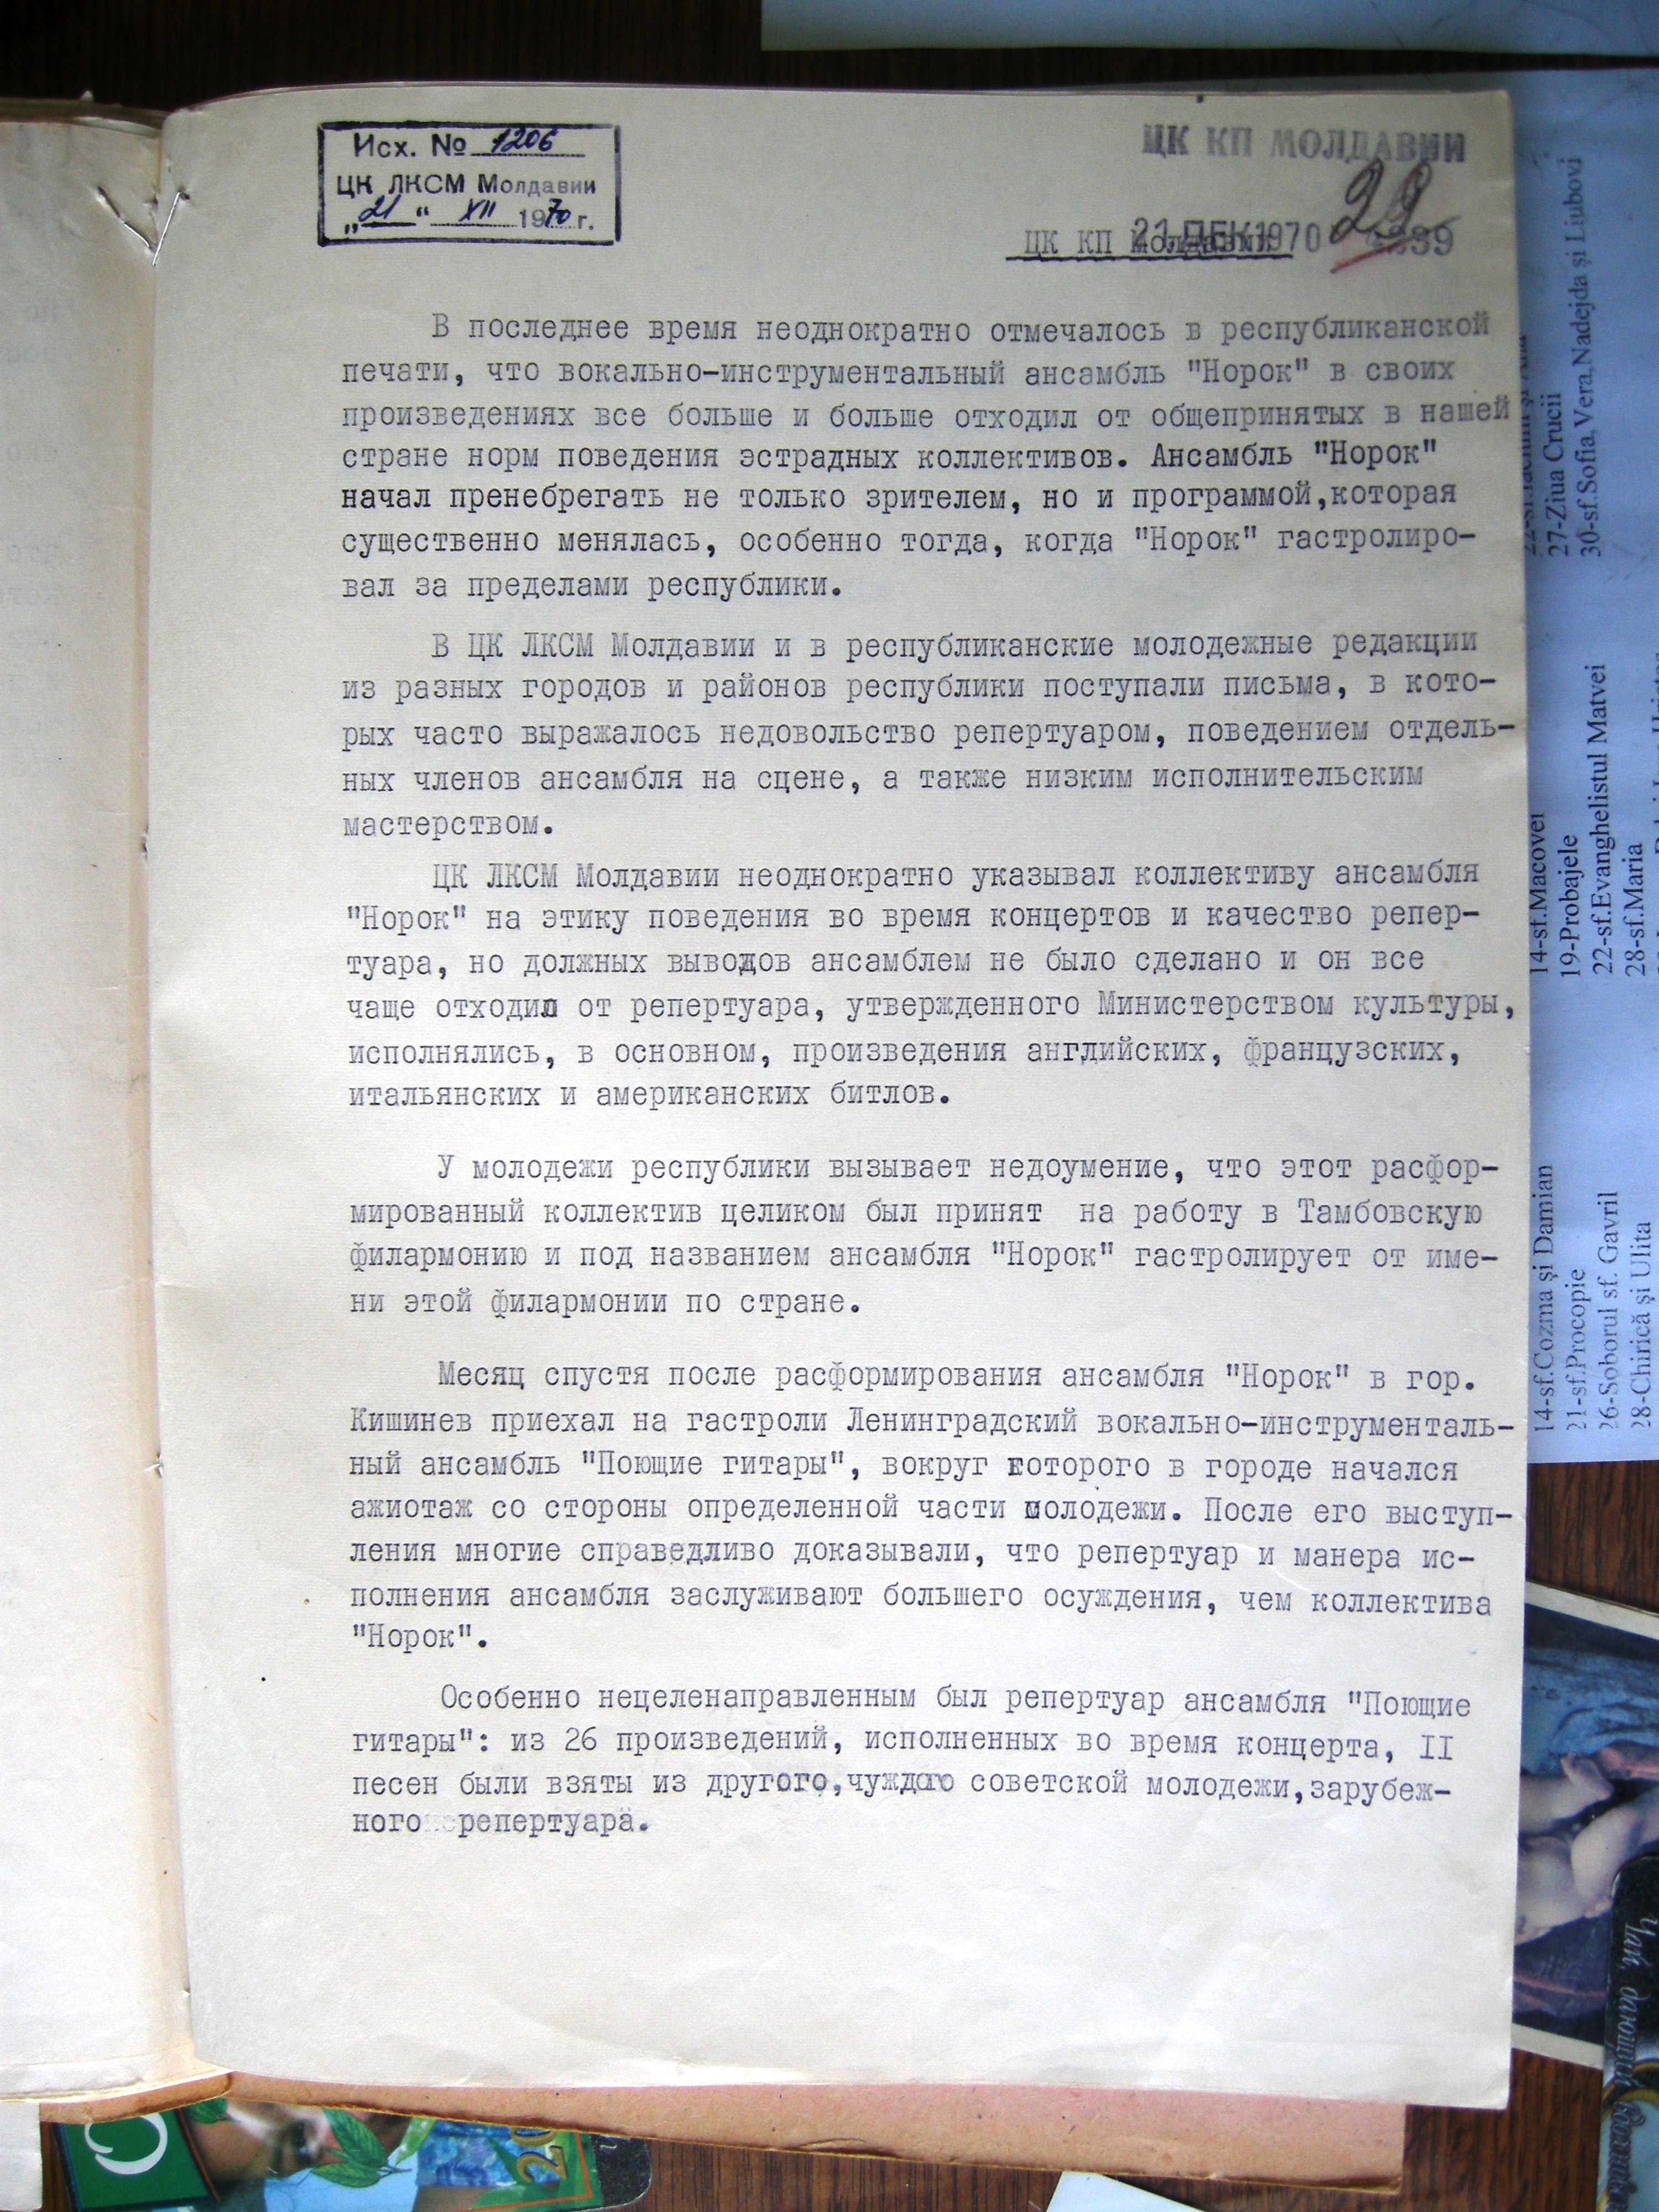 First page pf Petru Lucinschi's letter to the Central Committee  of the CPM. 11 December 1970